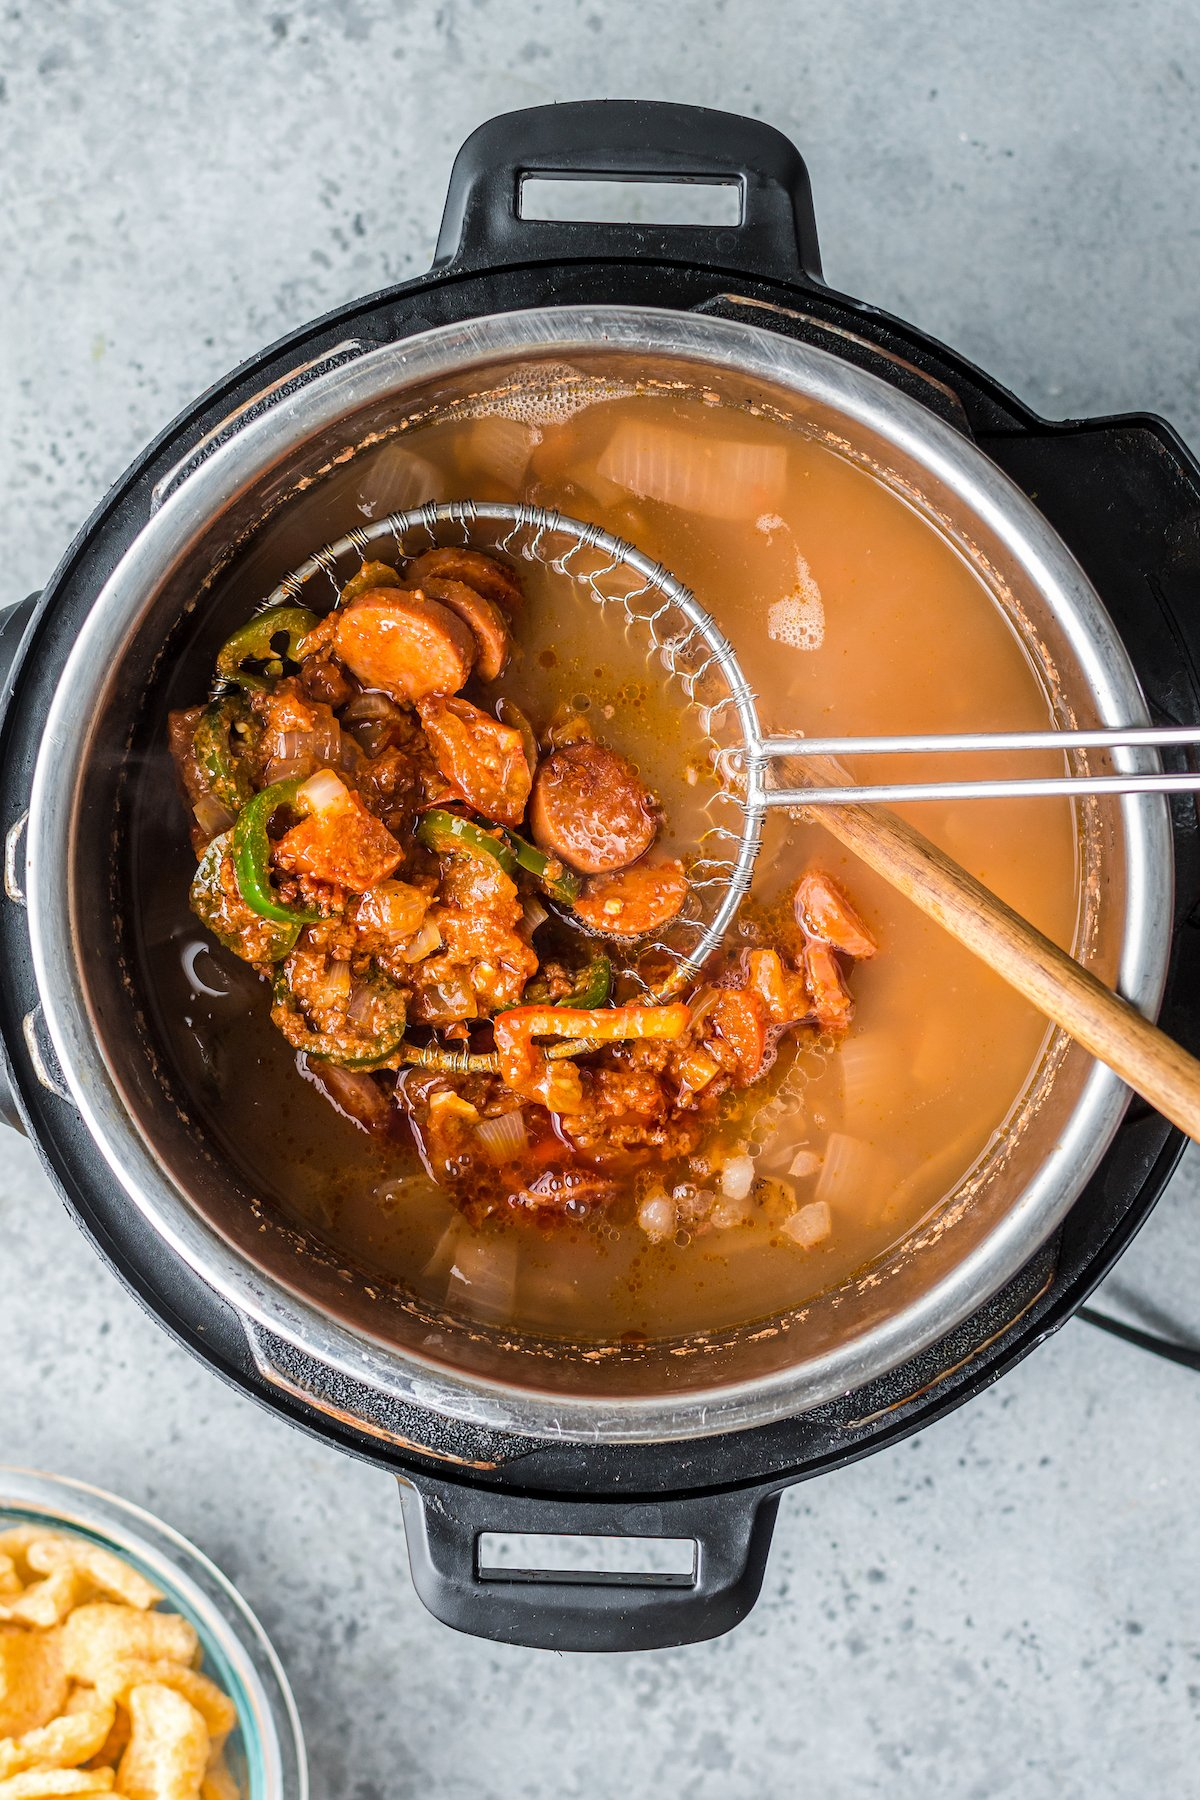 Sausage and vegetables in a strainer.